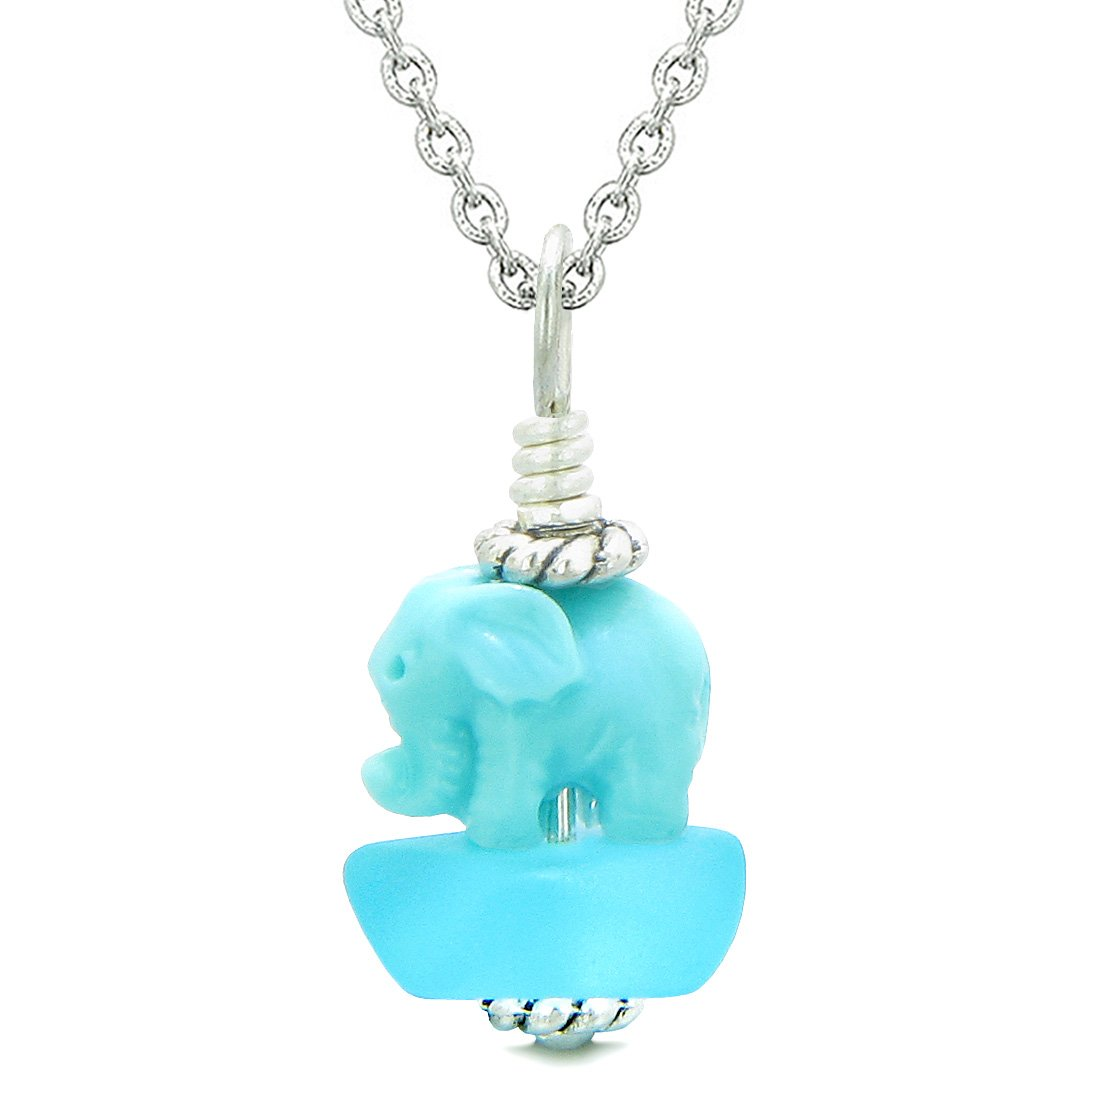 Sea Glass Sky Blue Frosted Cloud Celeste Elephant Lucky Charm Magic Amulet Pendant 22 Inch Necklace